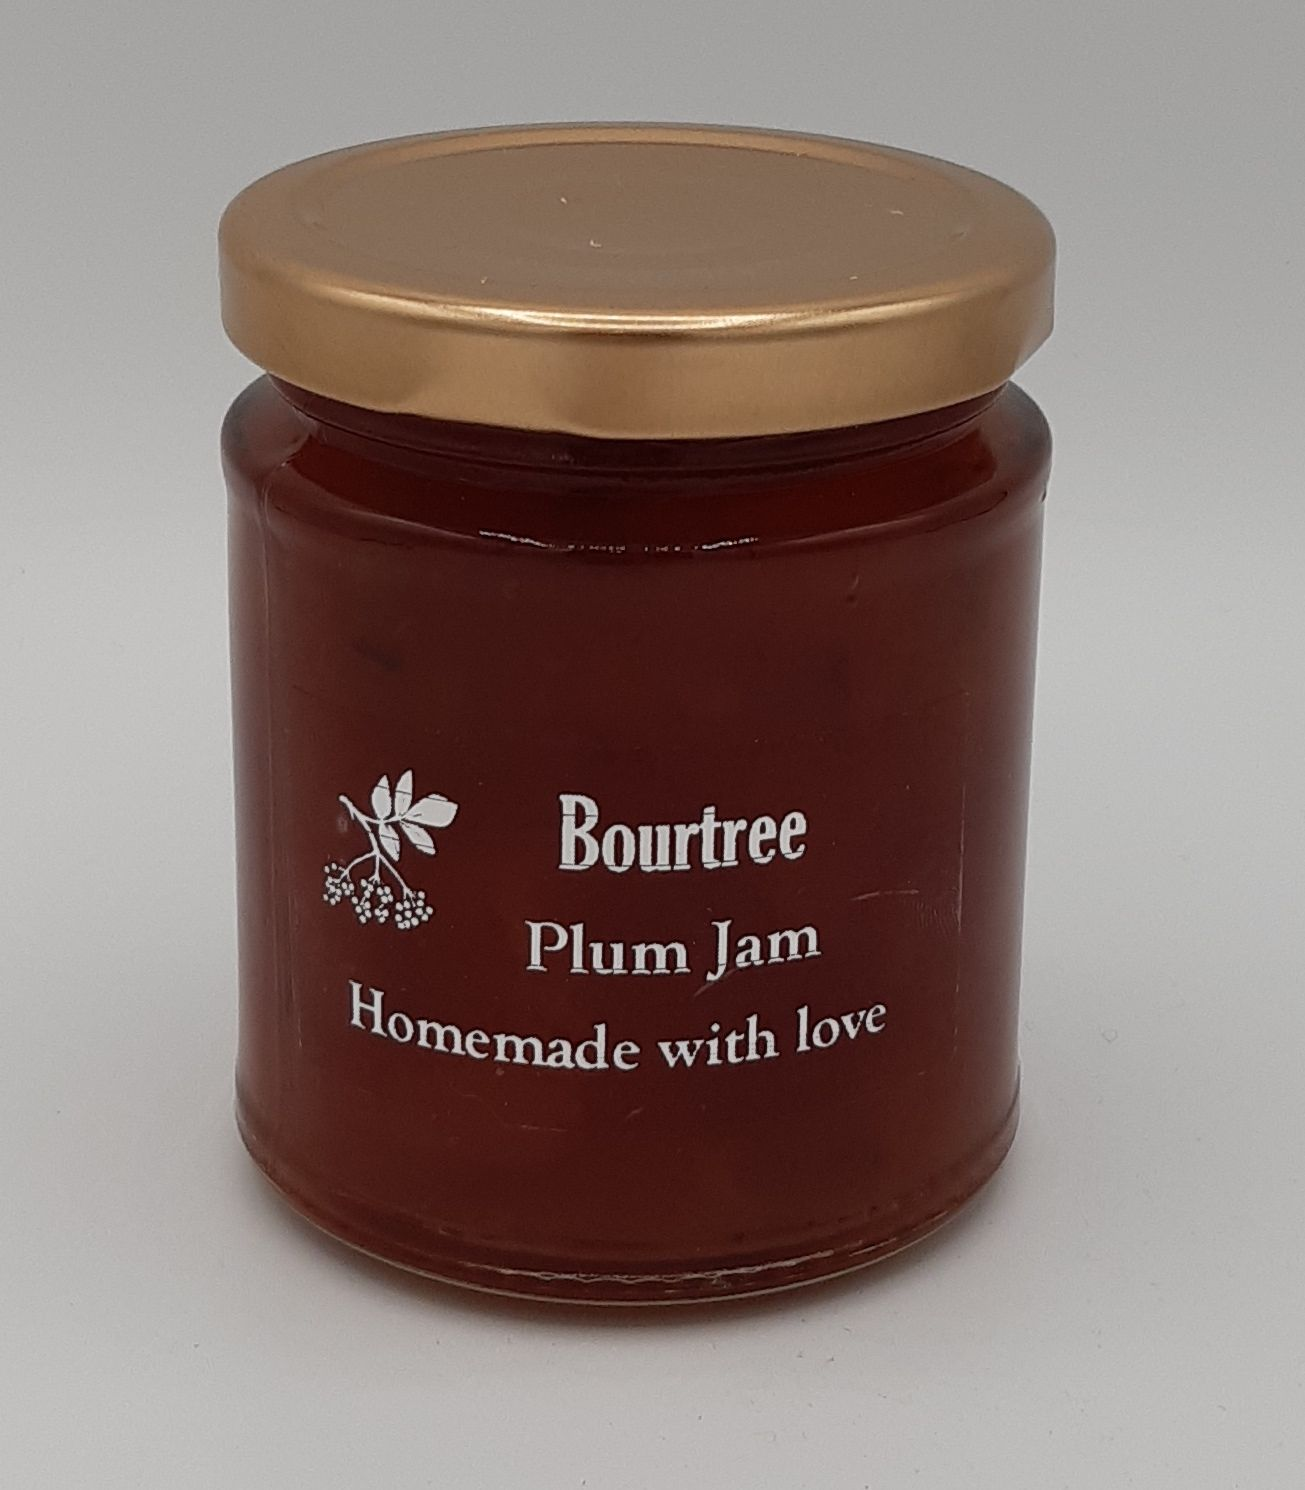 Bourtree Plum Jam Jams